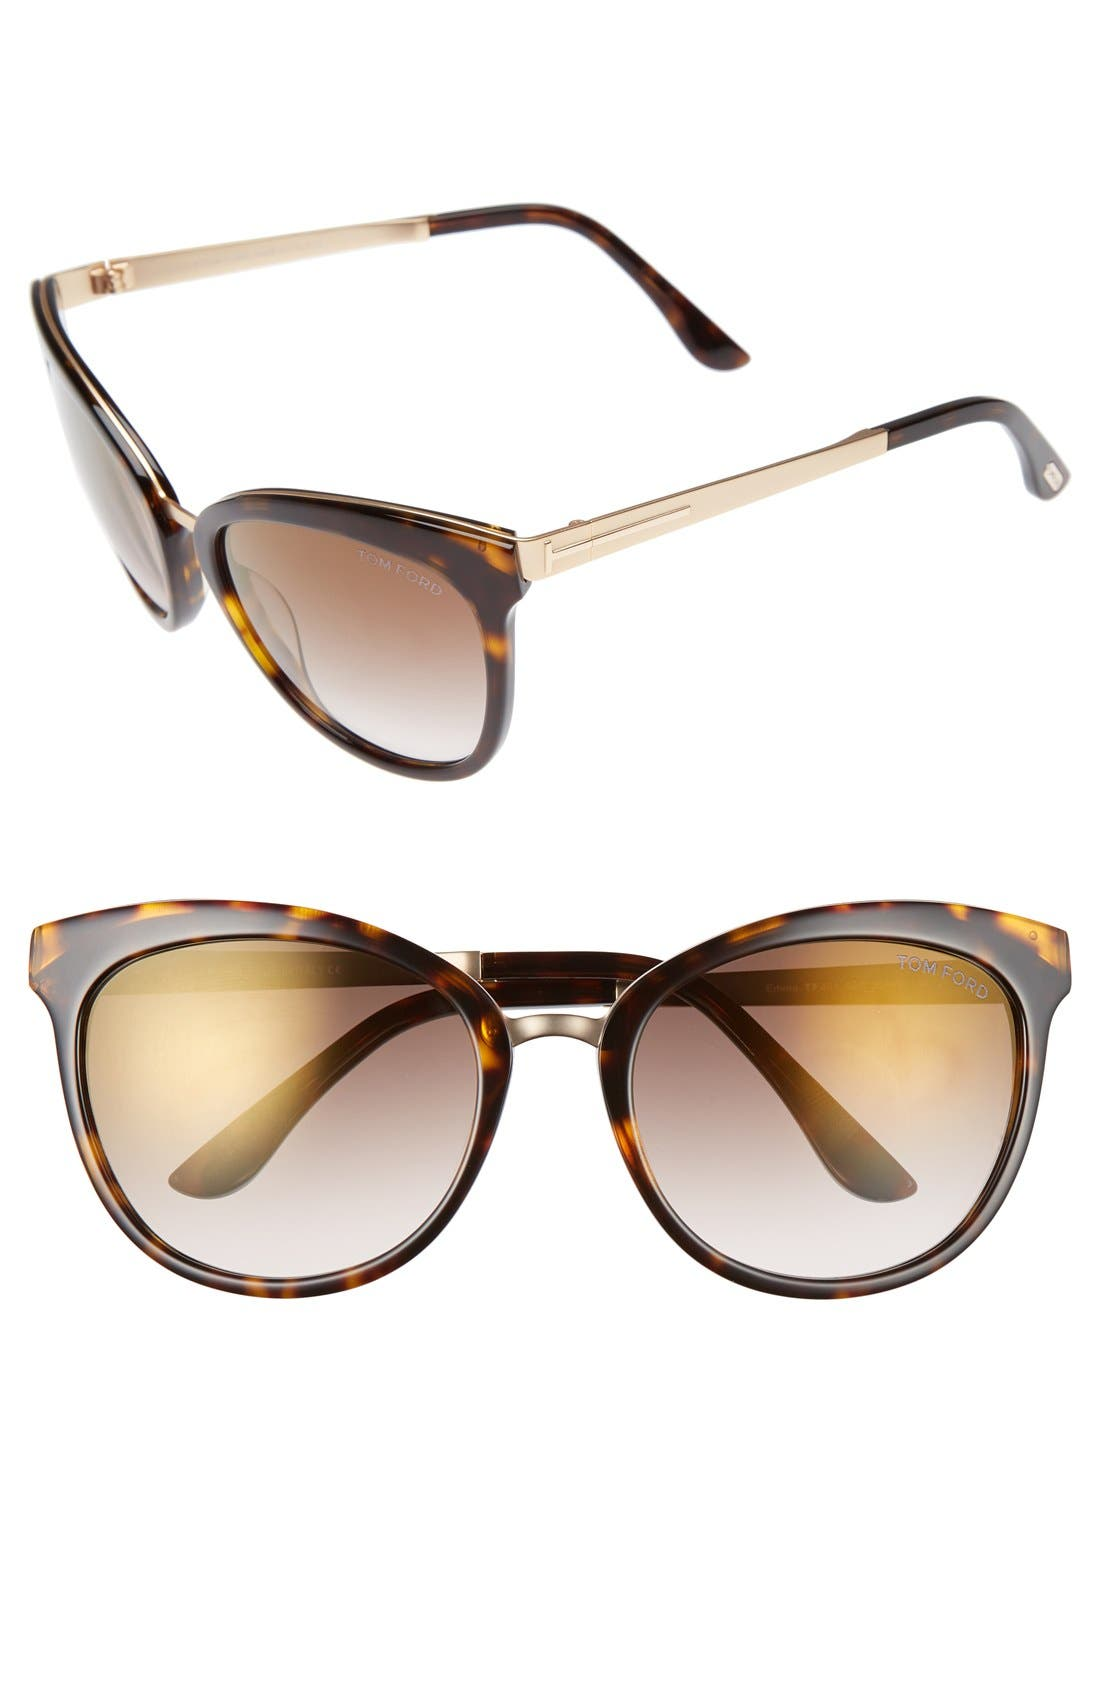 TOM FORD Emma 56mm Retro Sunglasses